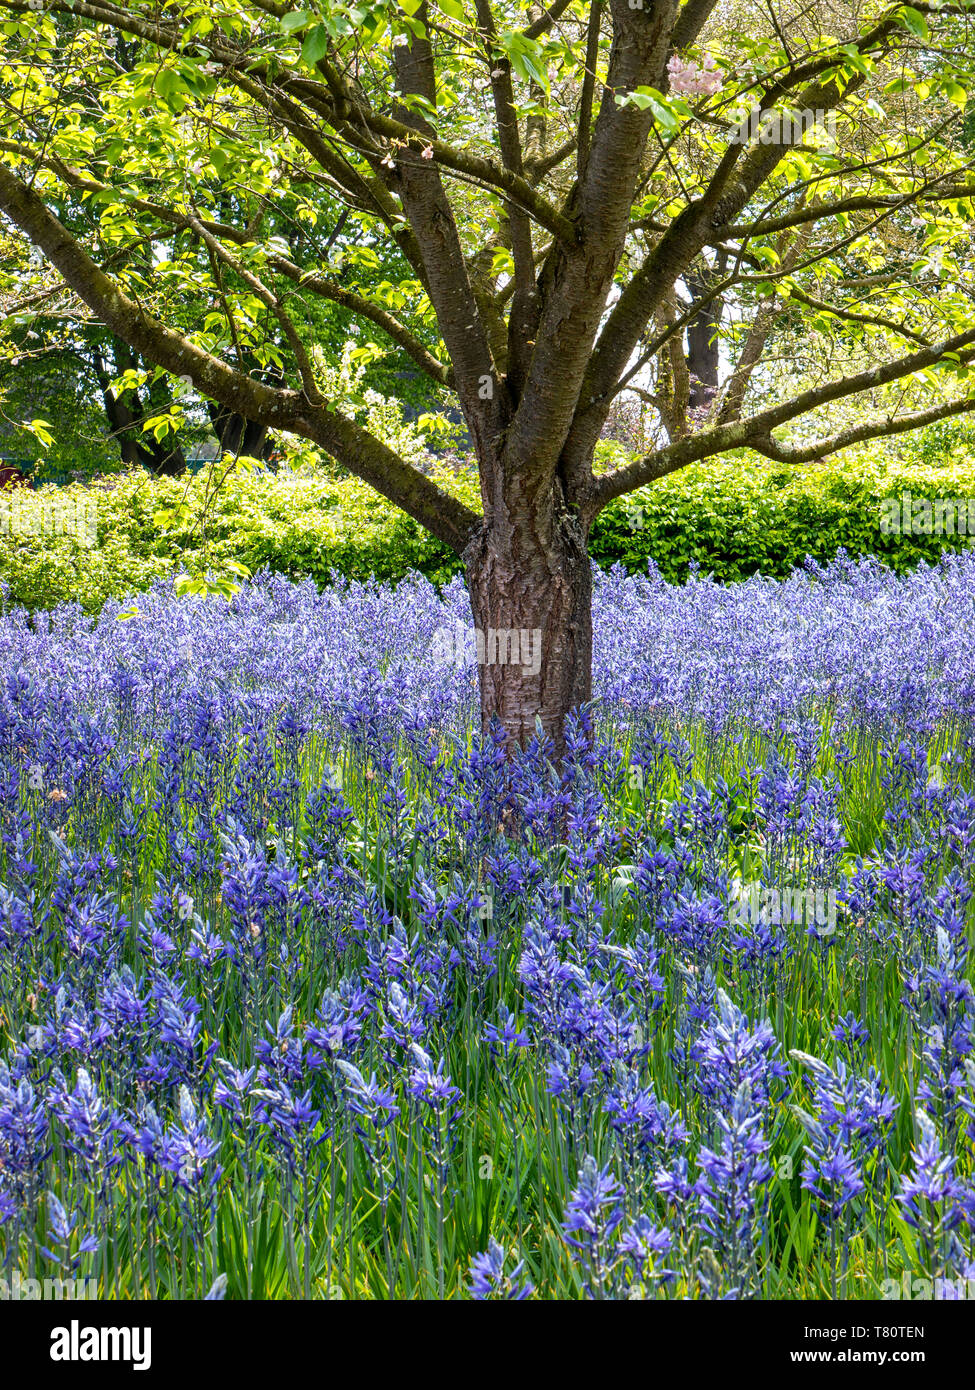 Camassia leichtlinii  known as Great Camas or Large Camas, a perennial herb. Subspecies C. leichtlinii subsp. suksdorfii in meadow with Beech tree - Stock Image